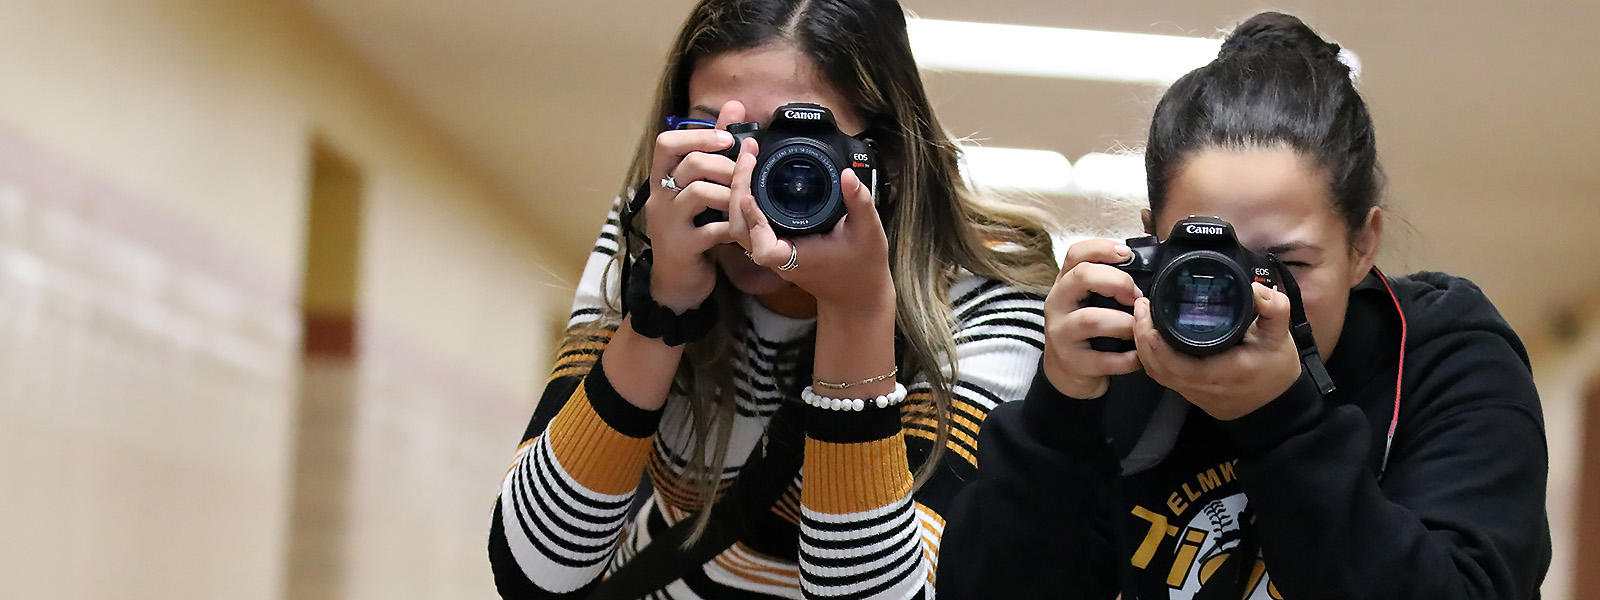 Photography students take photos in the EPHS hallways.